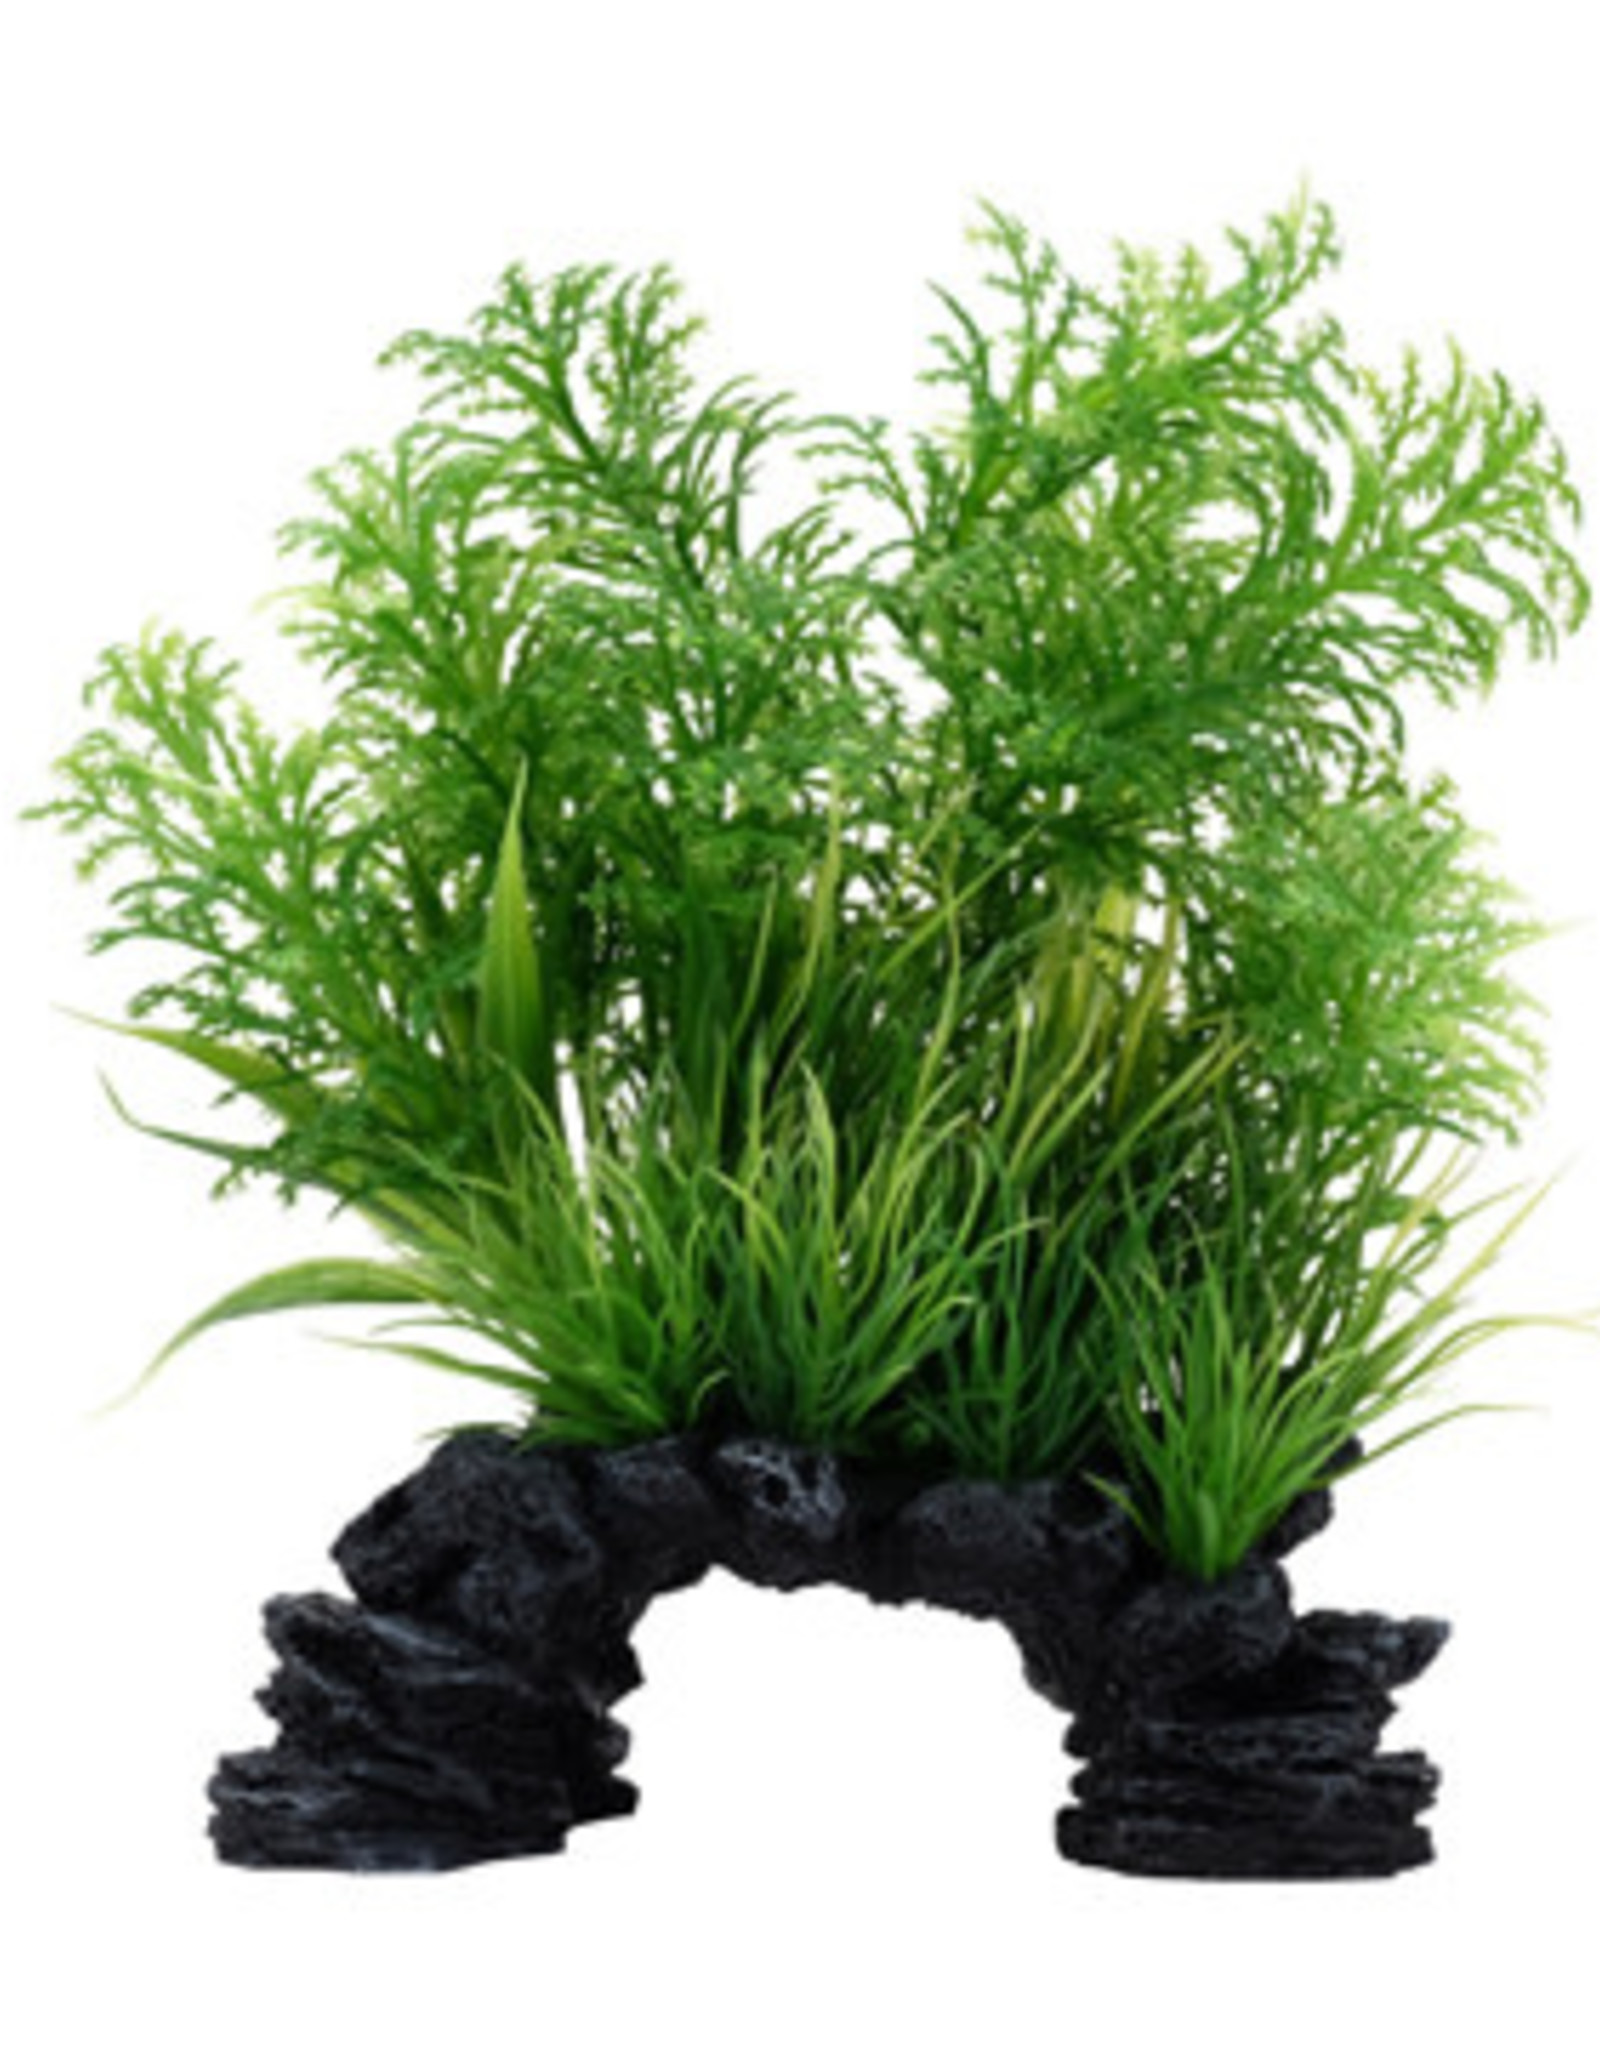 Fluval Fluval Aqualife Deco Scapes White-Tipped Hottonia Mix - 15-20 cm (6-8 in)